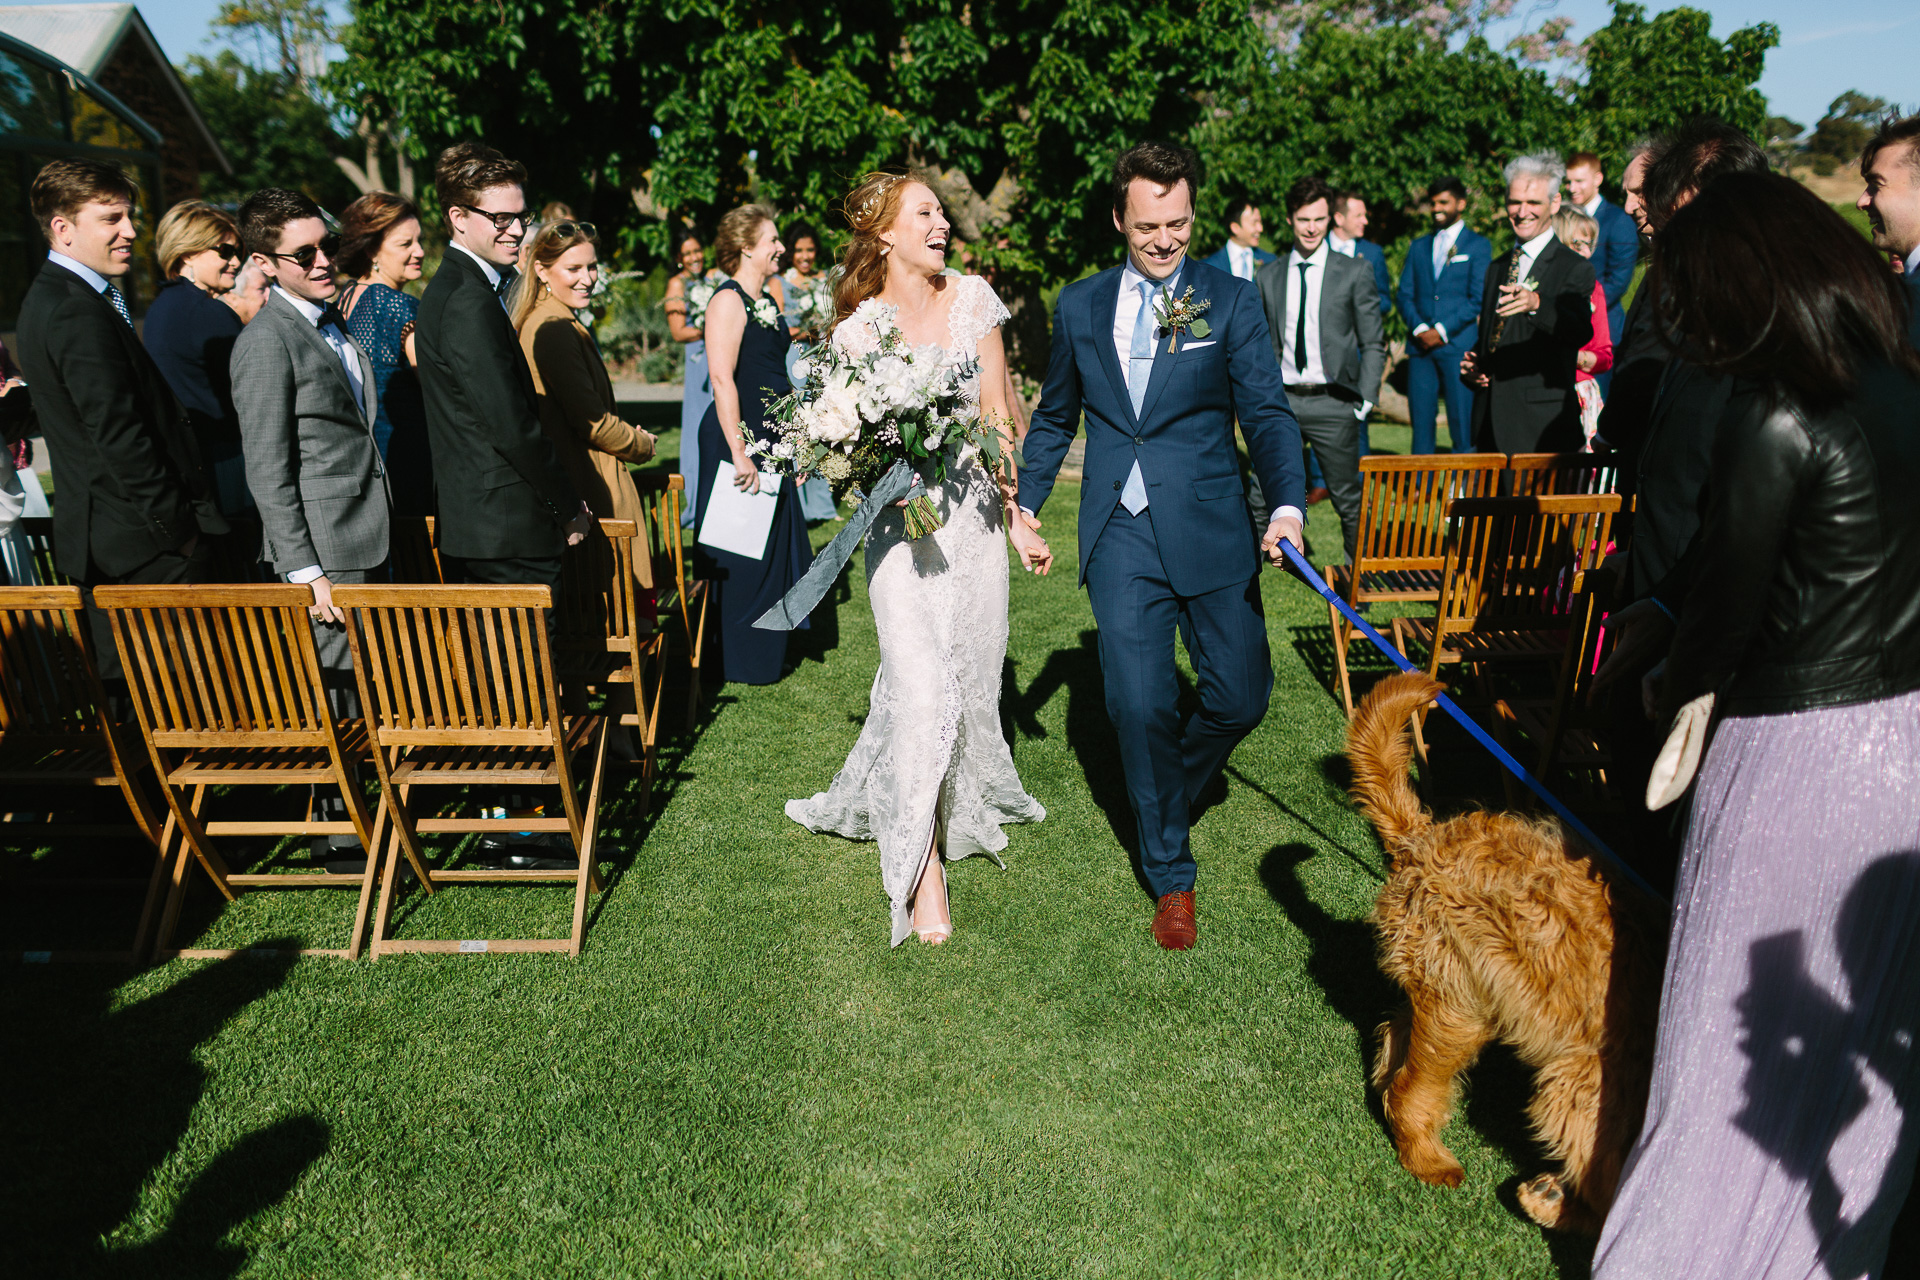 Coriole winery wedding mclarenvale, bride and groom walking down aisle with their dog